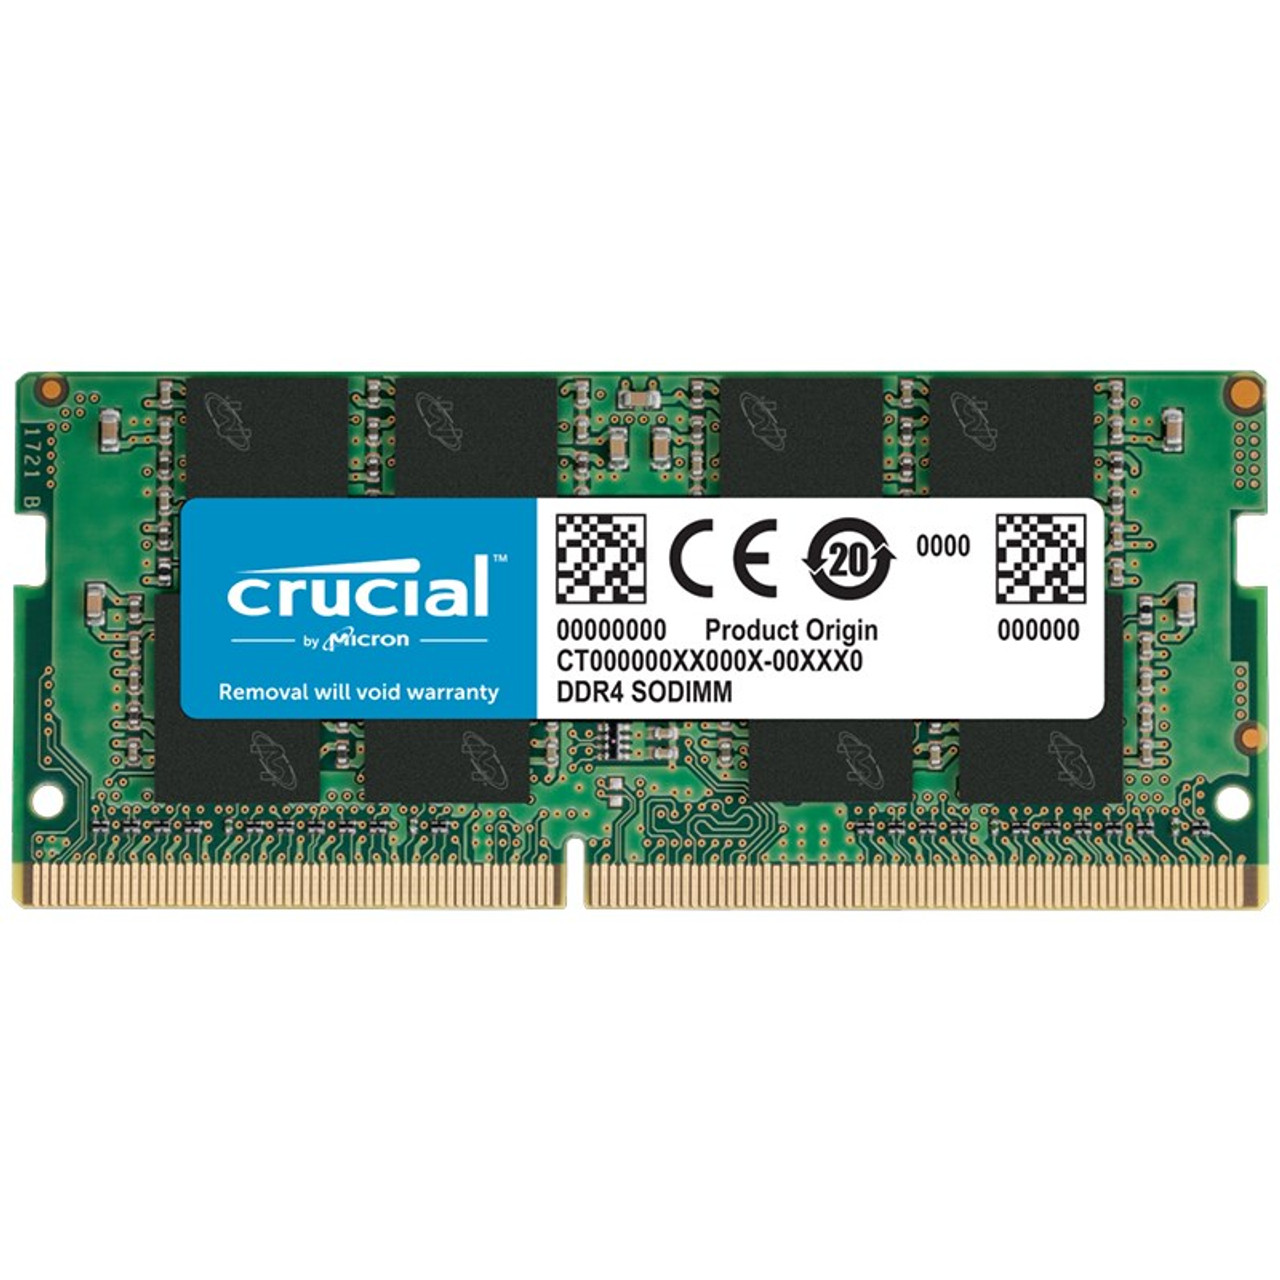 Image for Crucial 32GB (1x 32GB) DDR4 2666MHz SODIMM Memory CX Computer Superstore